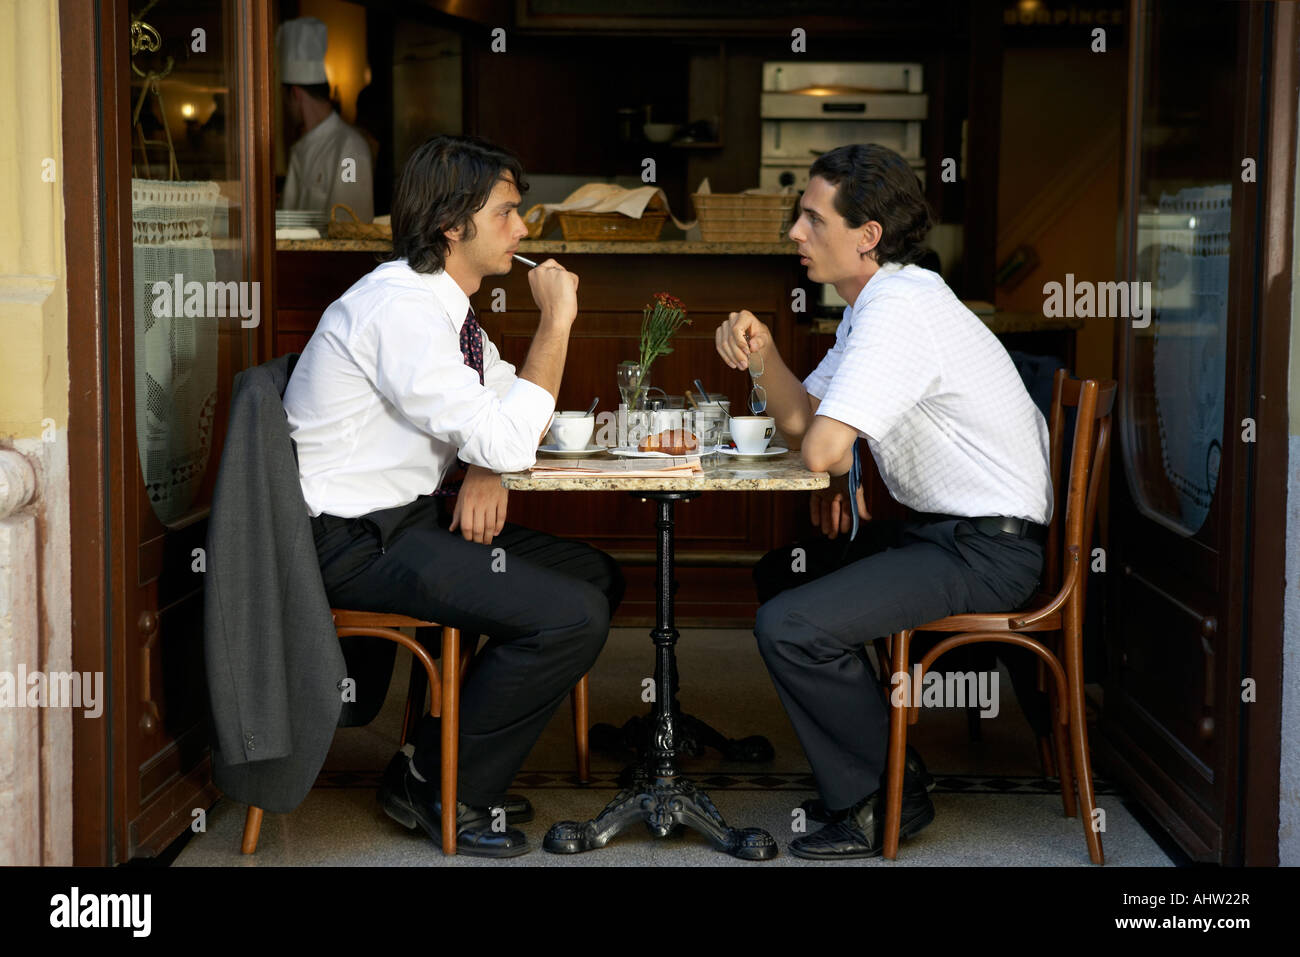 Businessmen having a coffee. - Stock Image